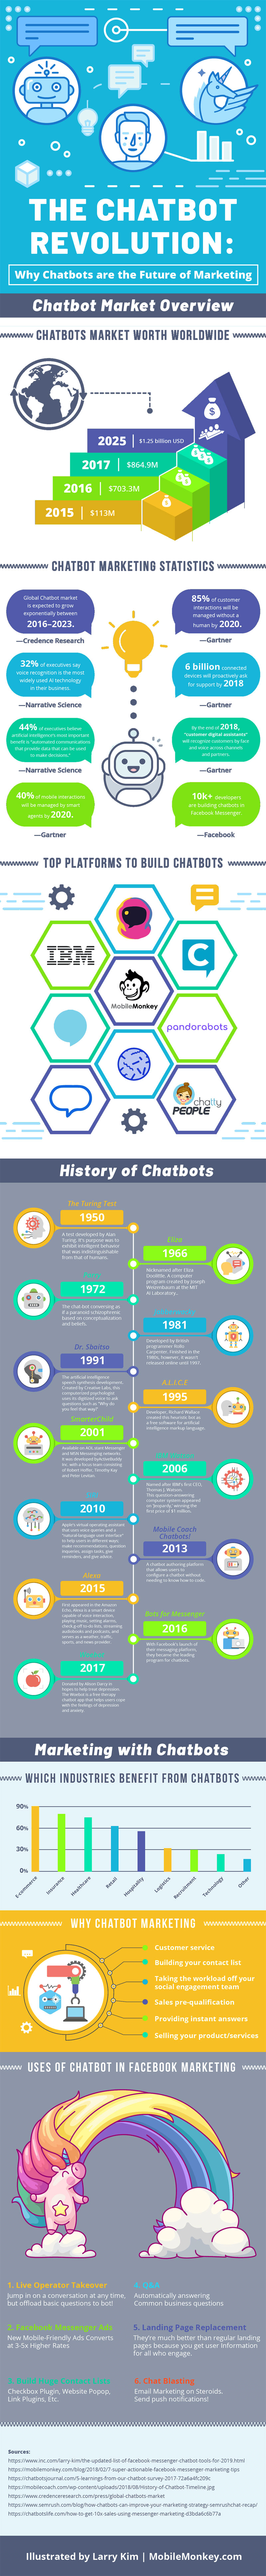 Chatbot Marketing Statistics: Trends, Stats 2019